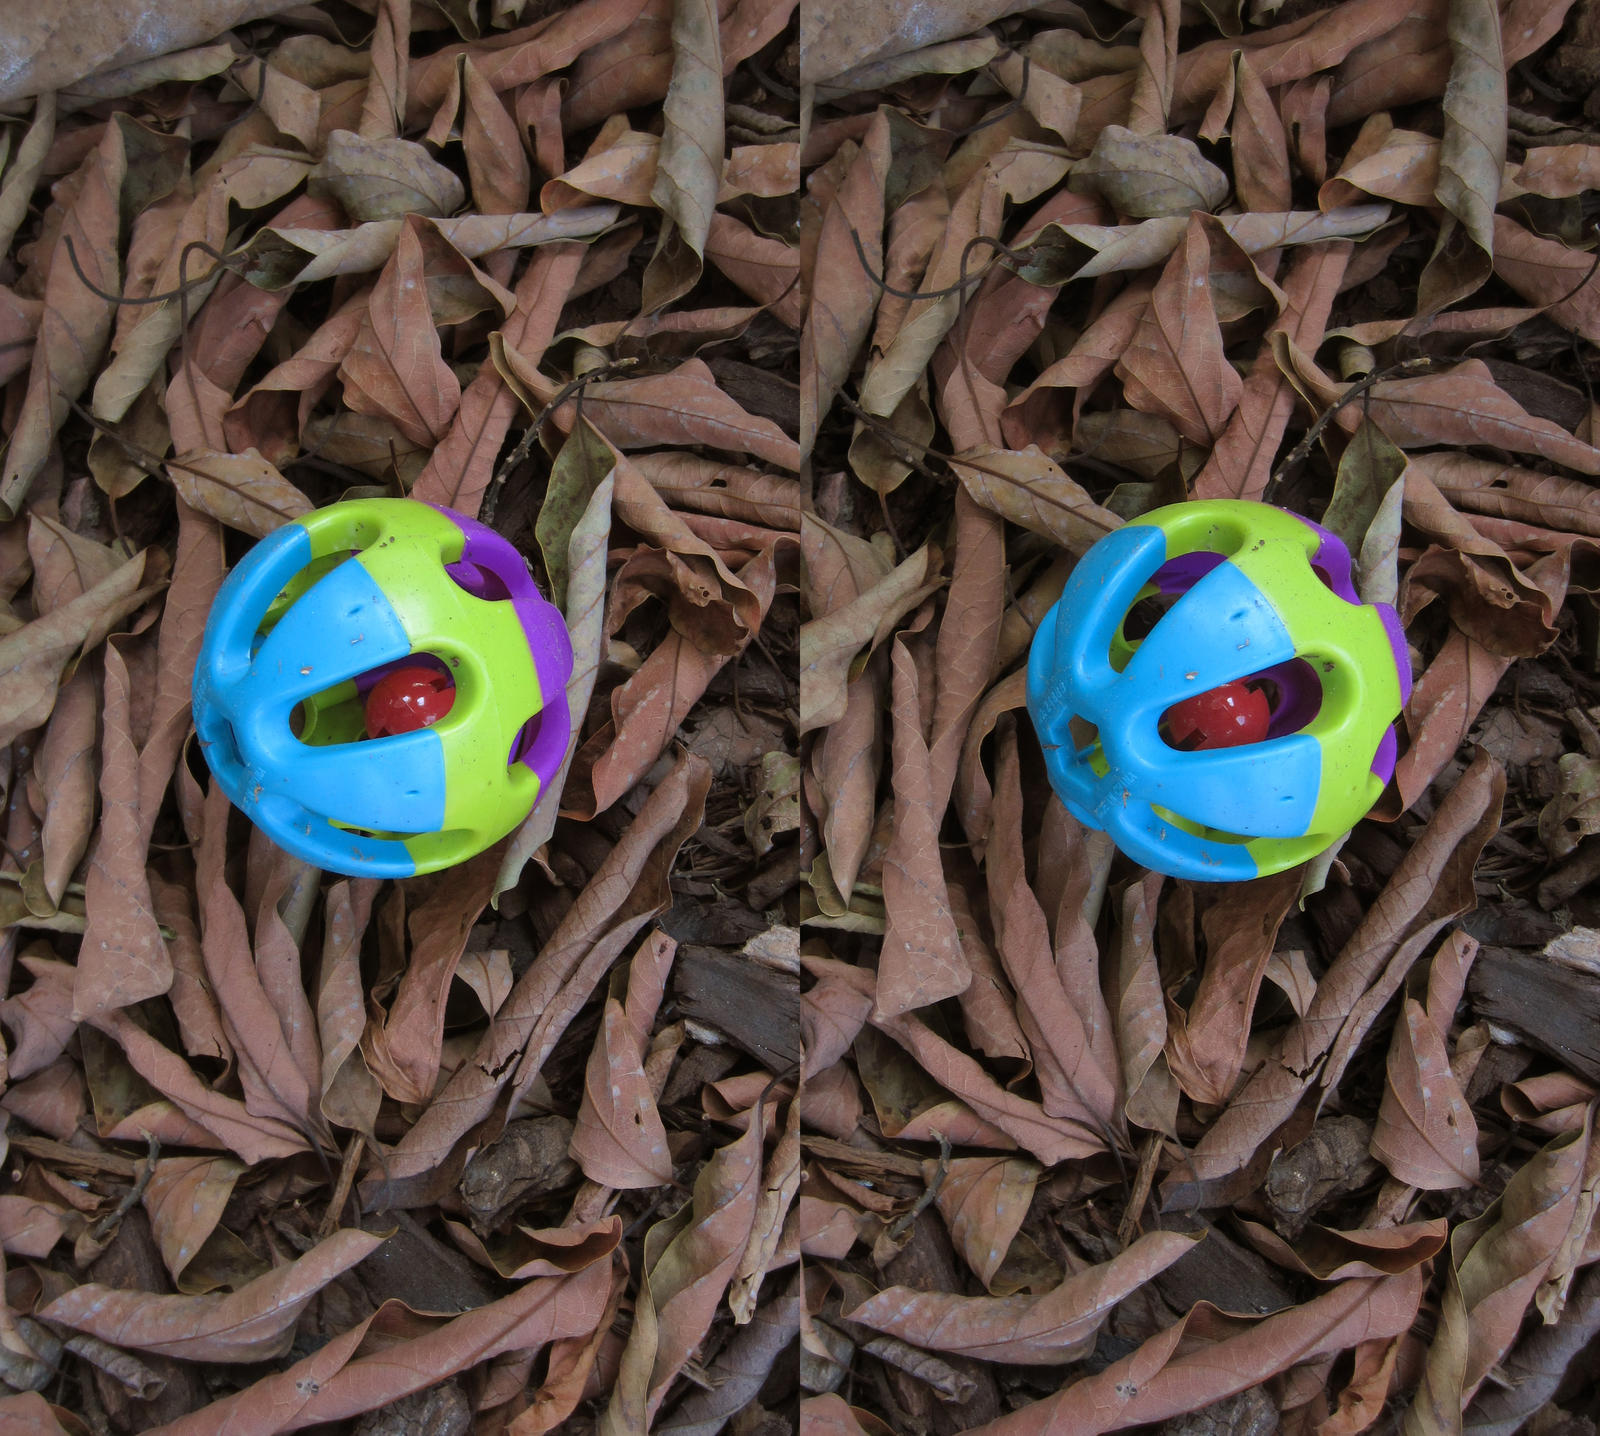 Stereograph - Ball in Leaves by alanbecker